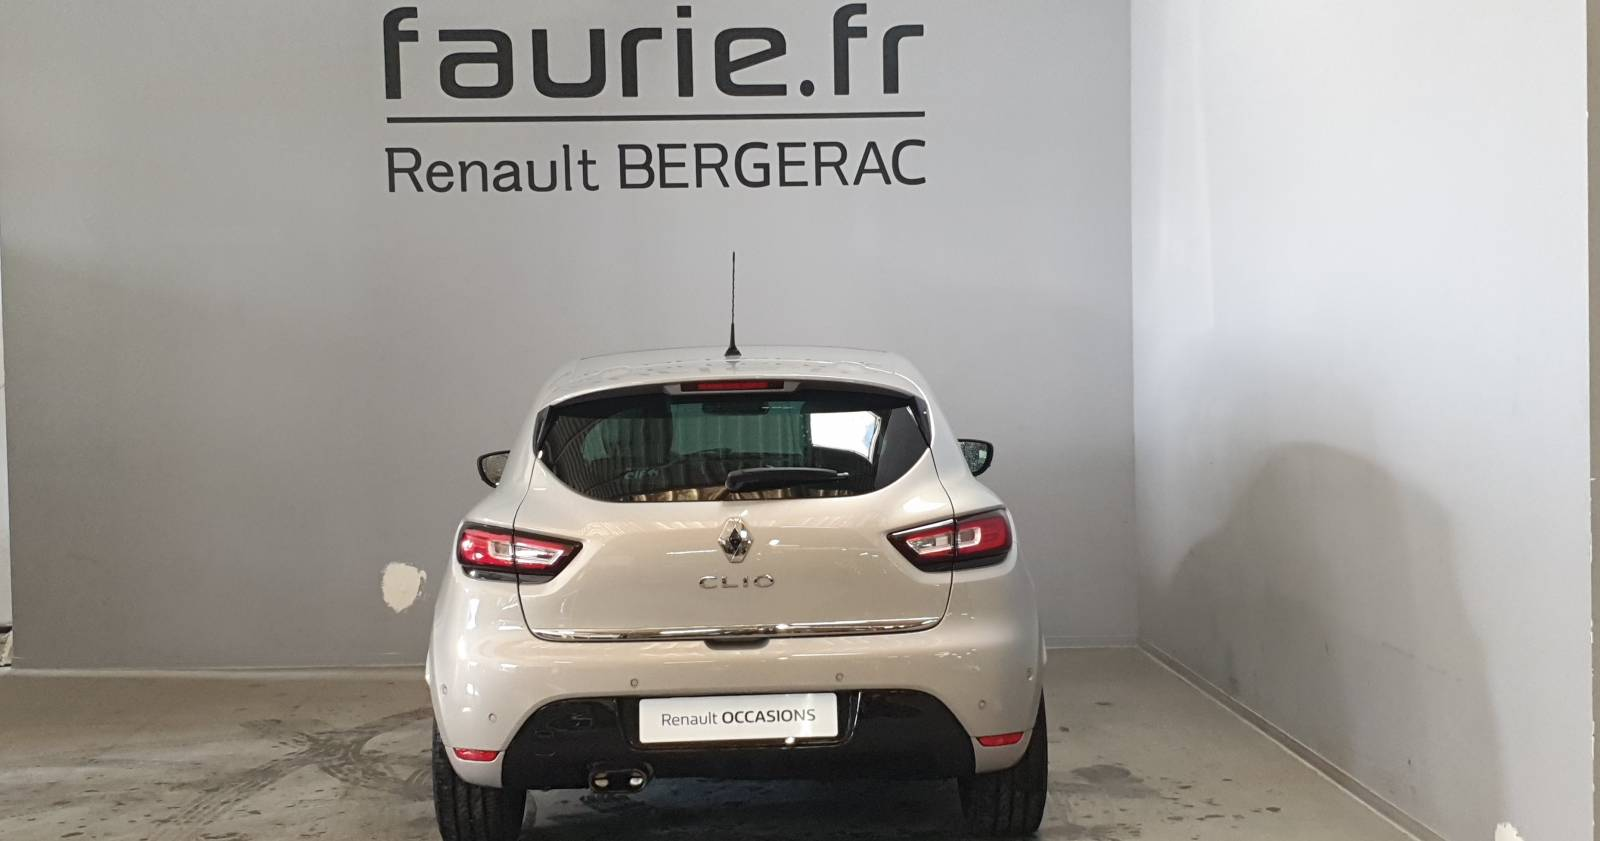 RENAULT Clio IV TCe 120 Energy - véhicule d'occasion - Site Internet Faurie - Renault - Faurie Auto Bergerac - 24100 - Bergerac - 6